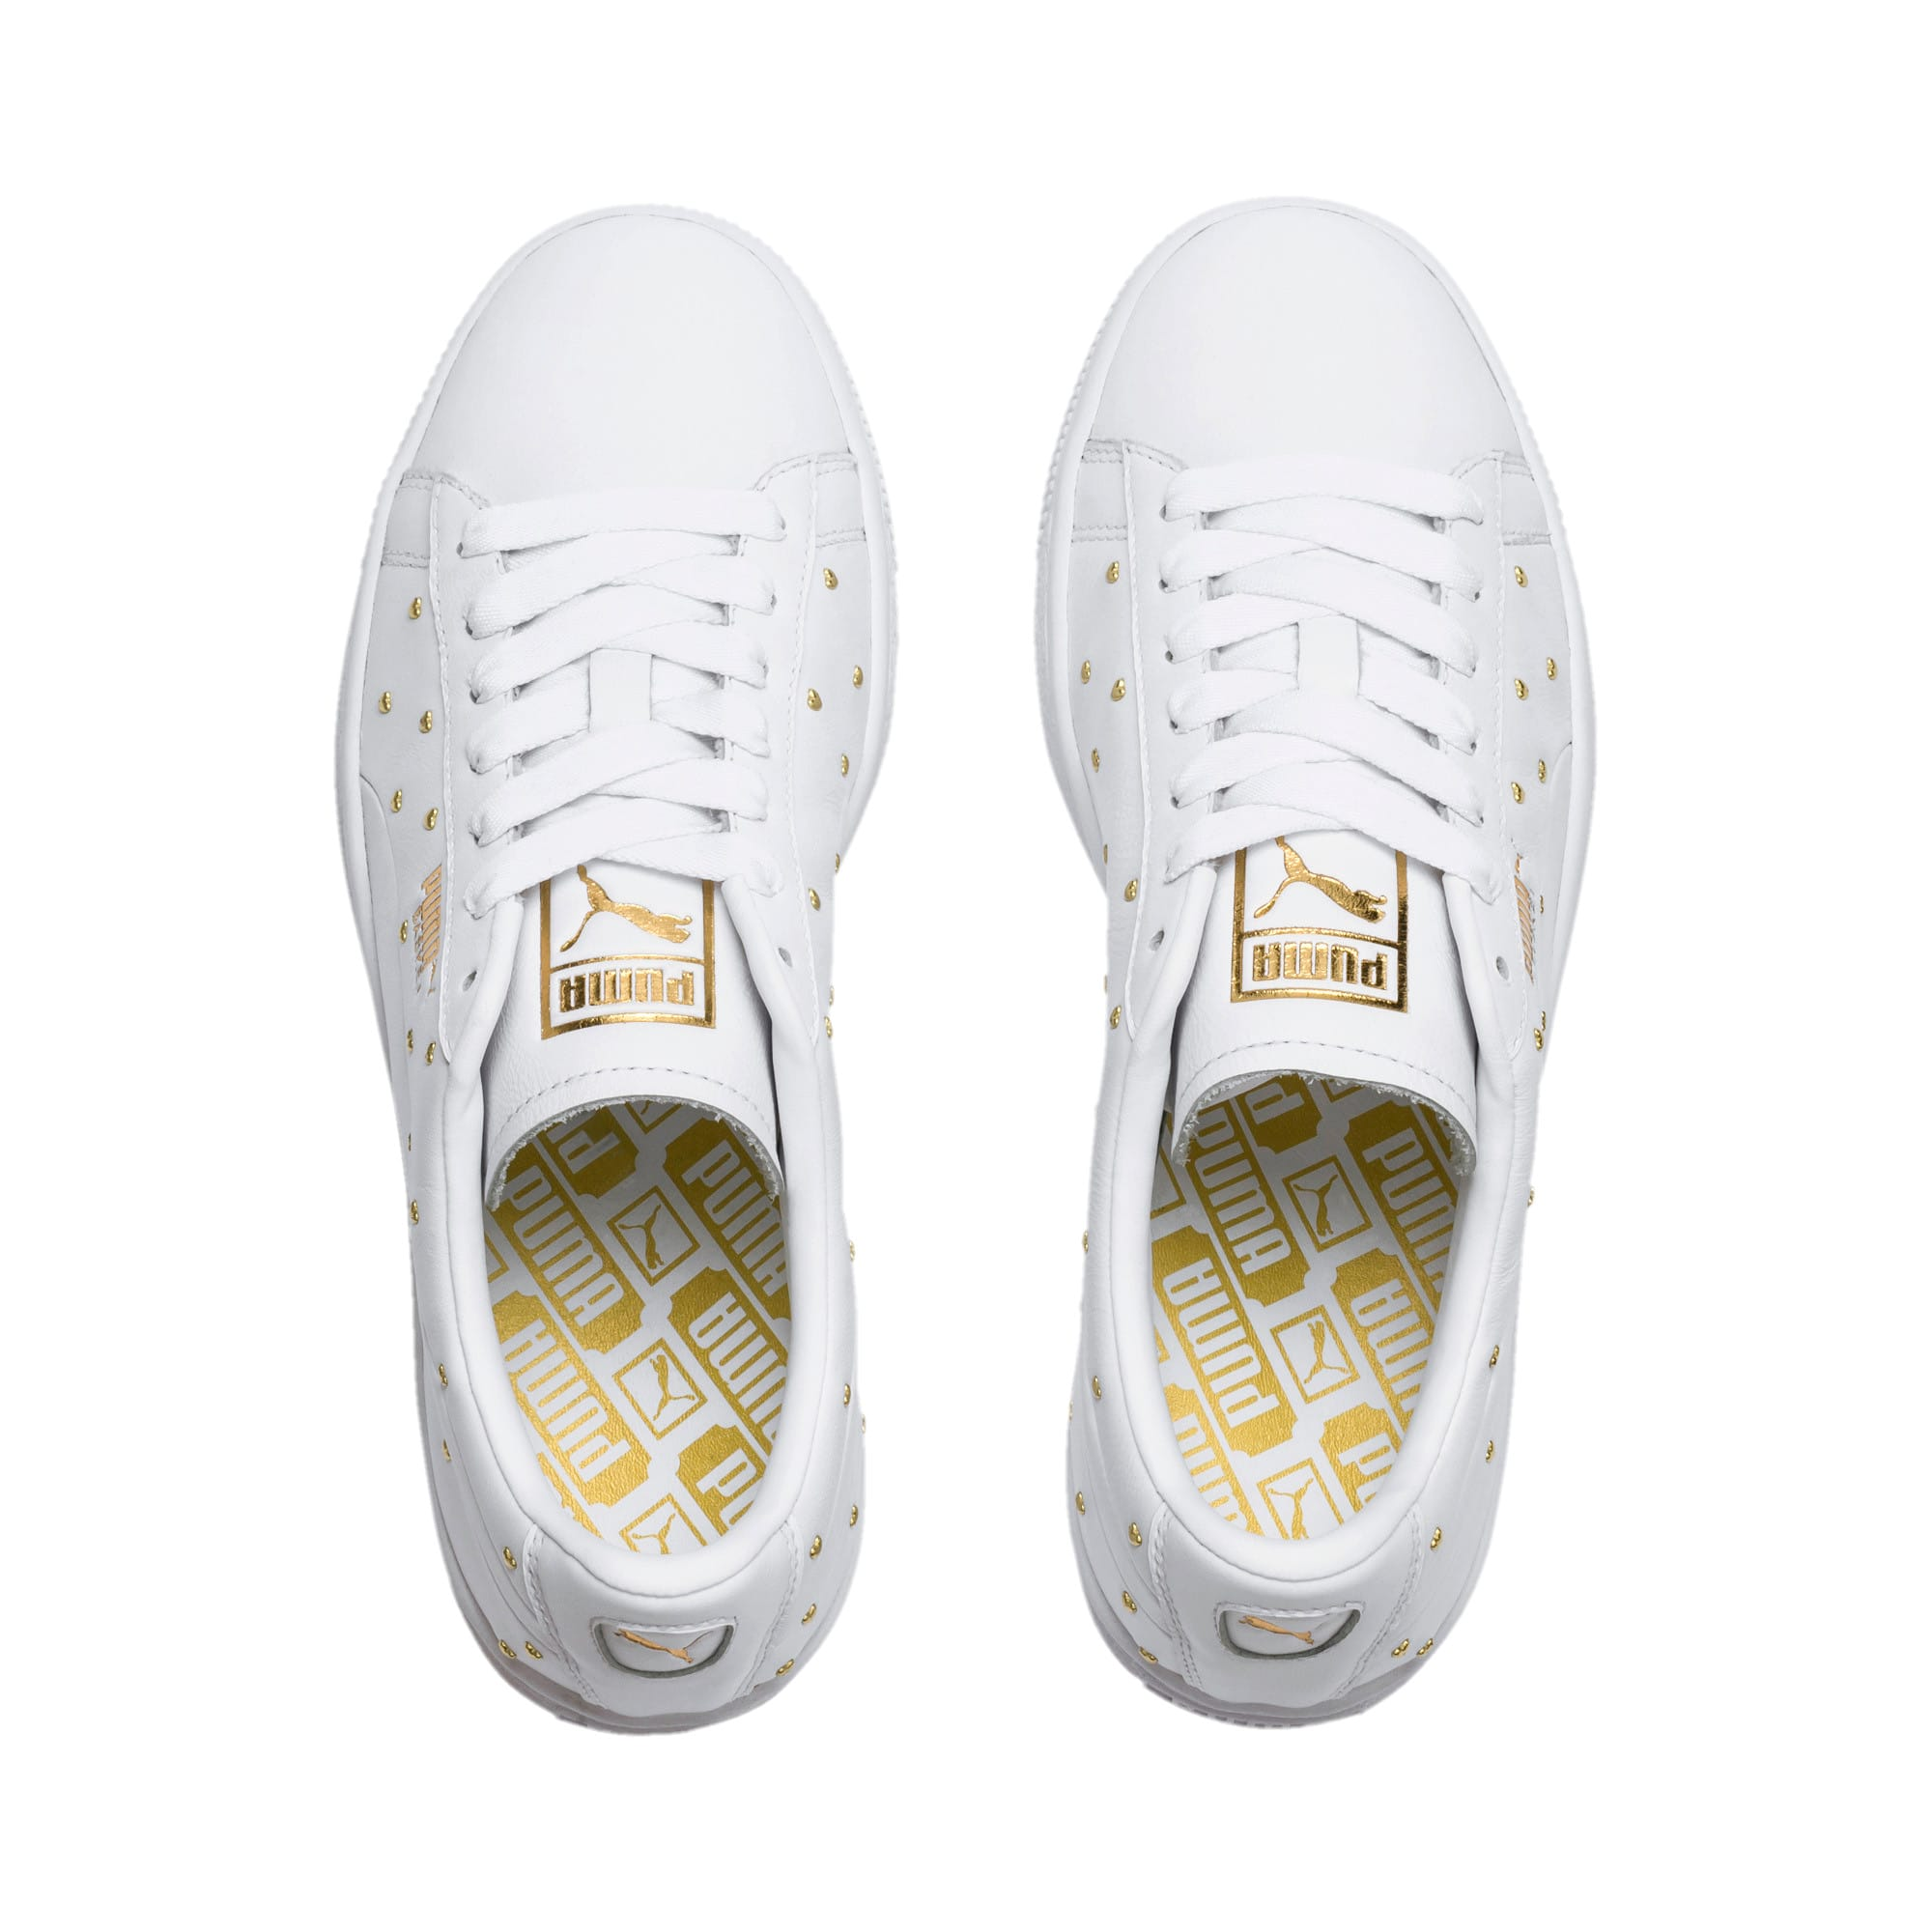 Thumbnail 7 of Basket Studs Women's Trainers, Puma White-Puma Team Gold, medium-IND